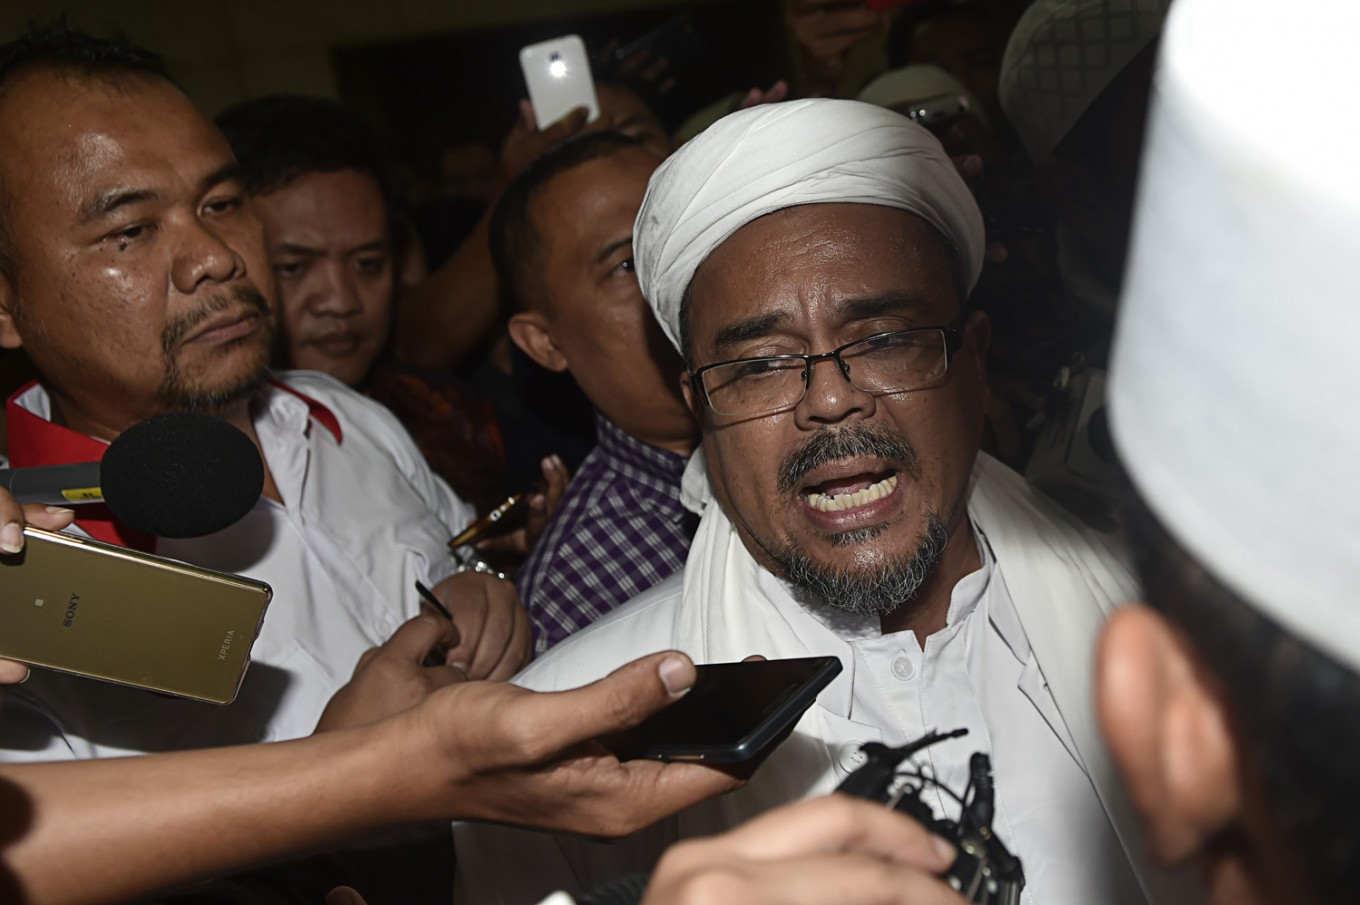 FPI threatens to report Megawati to police for blasphemy